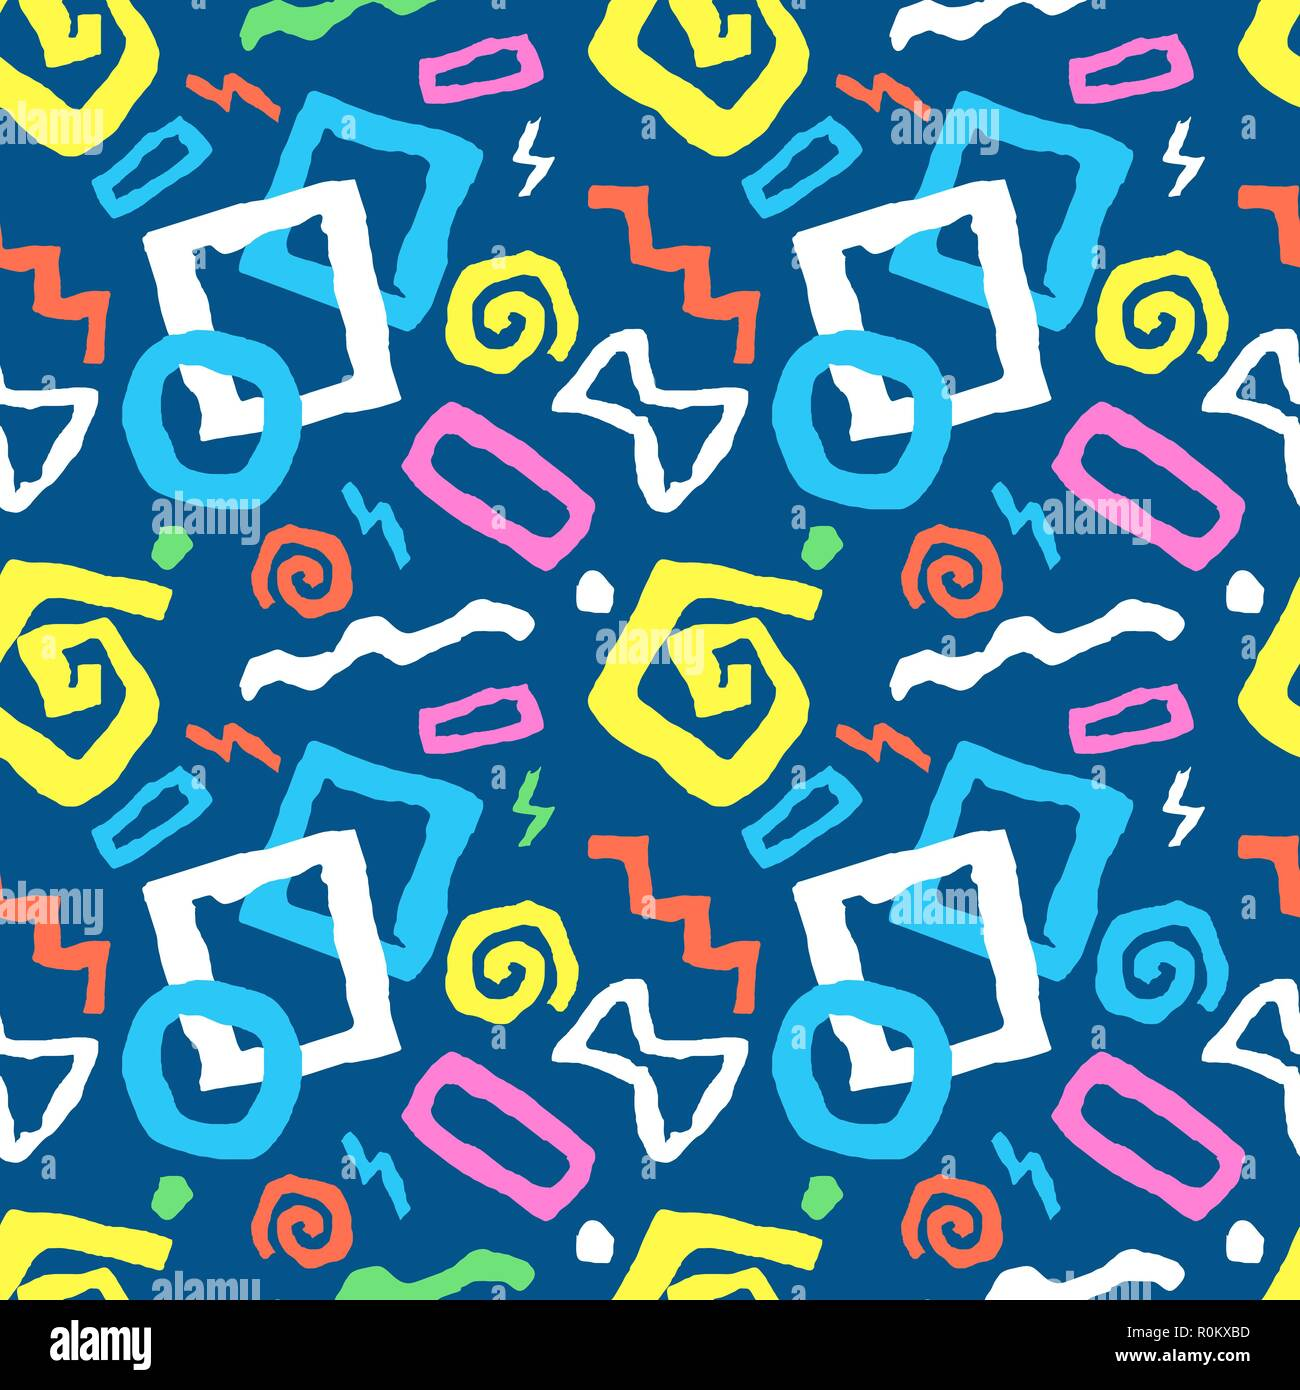 Colorful Seamless doodle art pattern in blue background with different shapes perfect for fabric, textile, gift wrap, wallpaper. Hand drawn vector ill